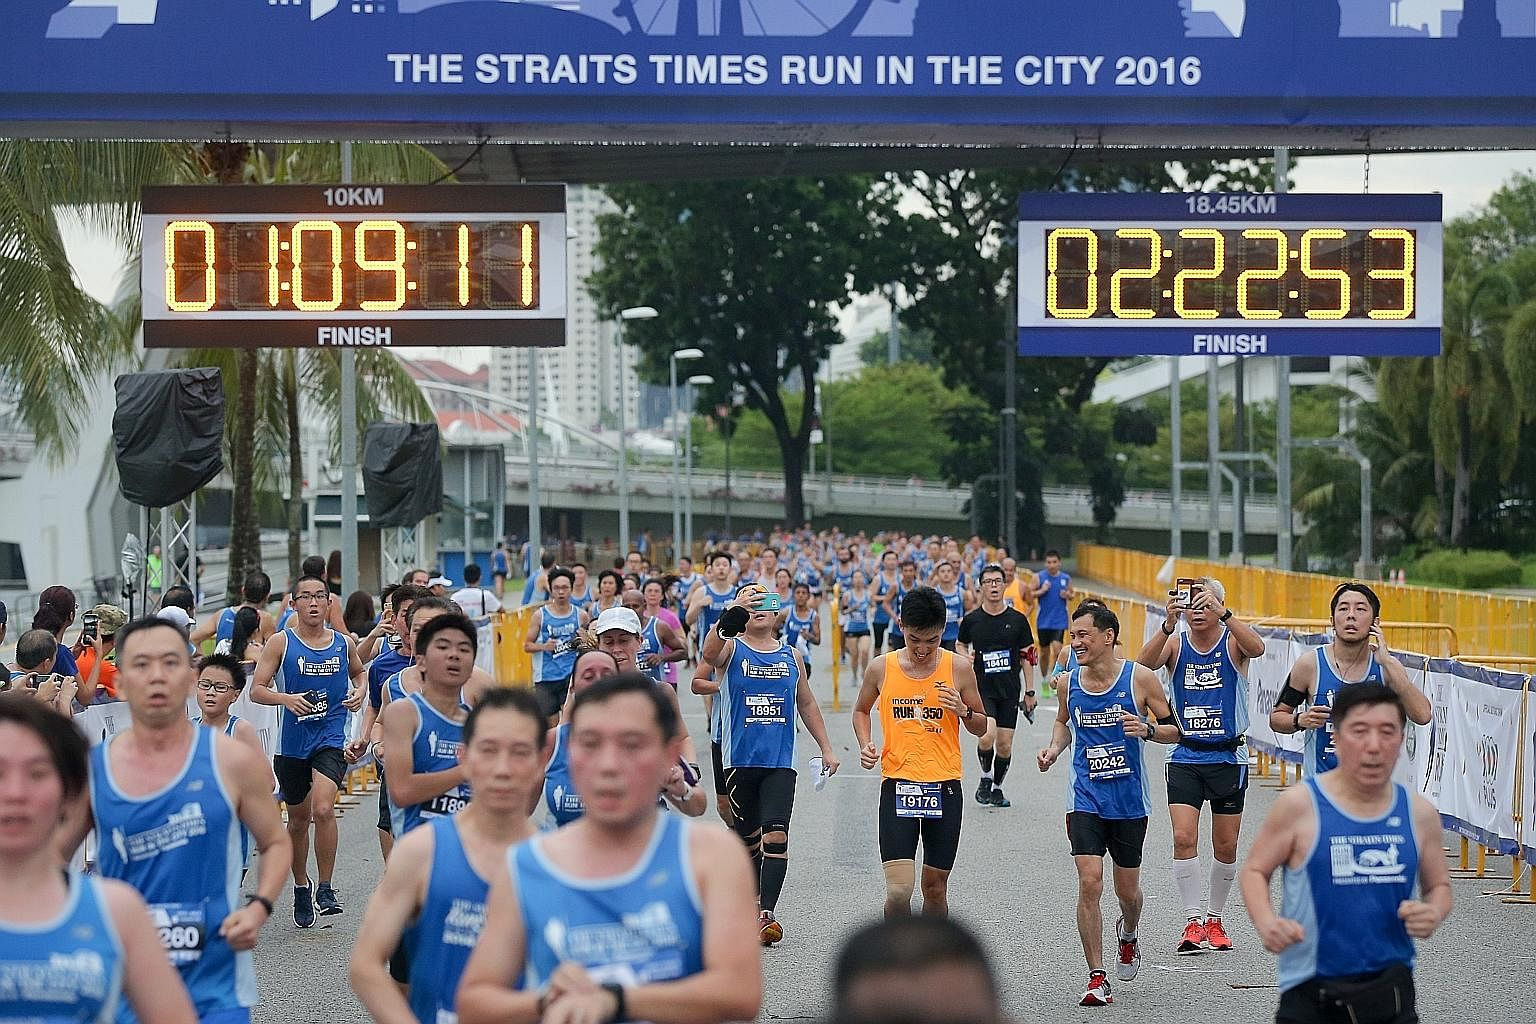 Participants at The Straits Times Run last year. Training for the run this year, to be held on July 16, gives one a clear goal to work towards, says the writer, as there is pressure to be ready. The closing date to sign up for the run has been extend